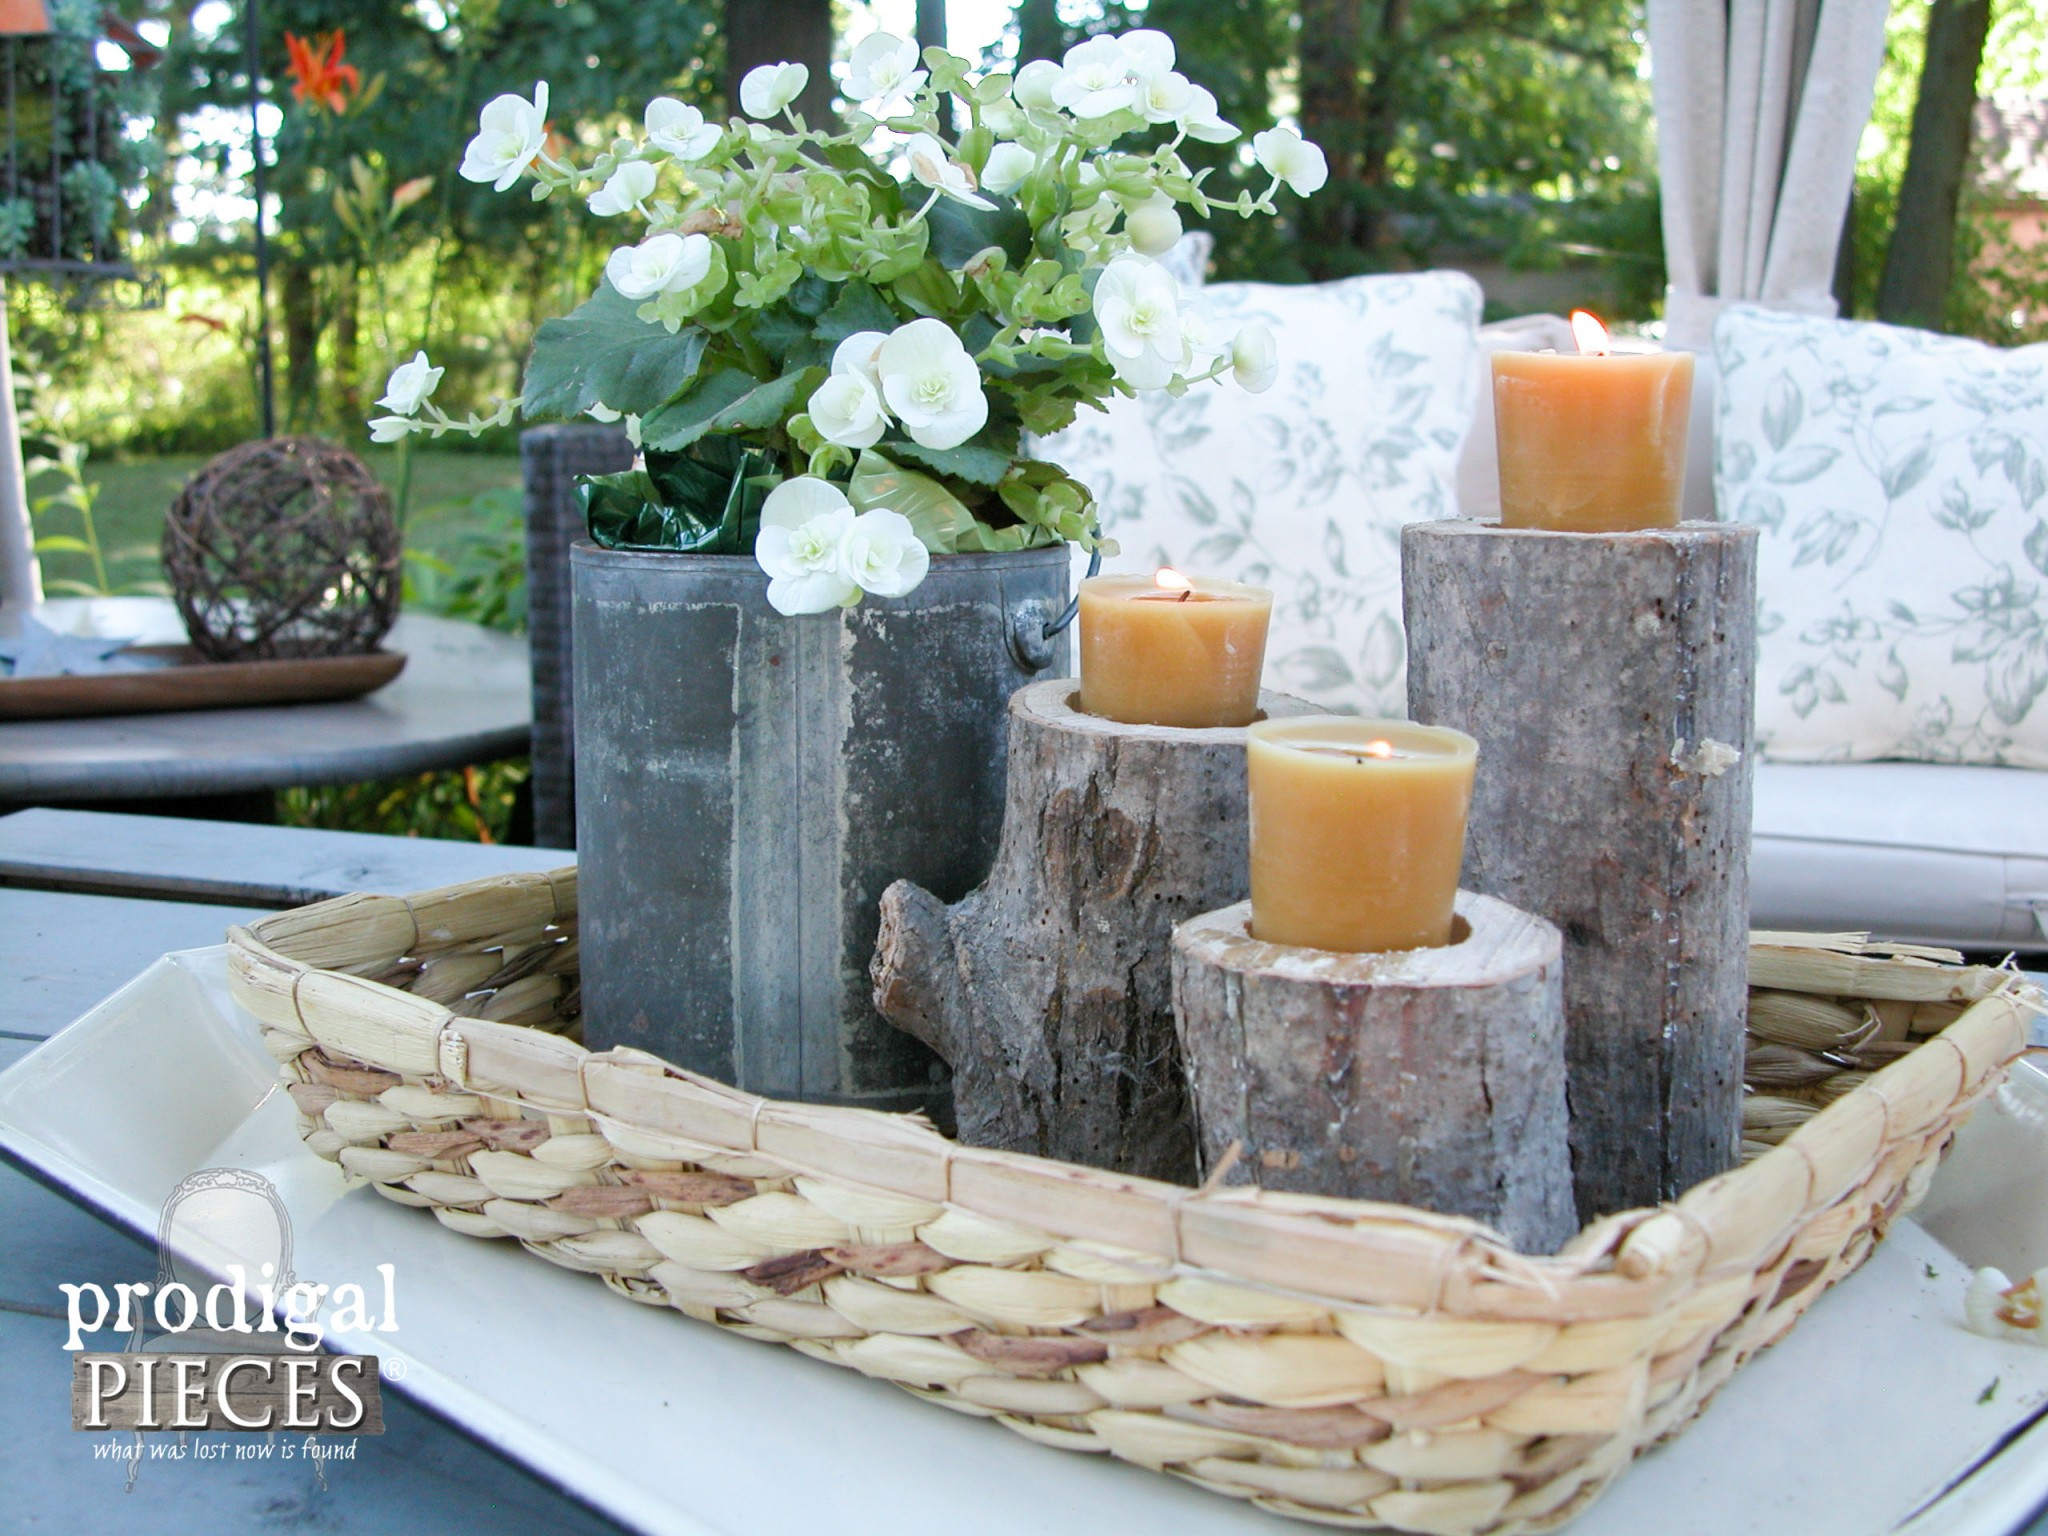 Log candlesticks a diy tutorial prodigal pieces for Log candles diy